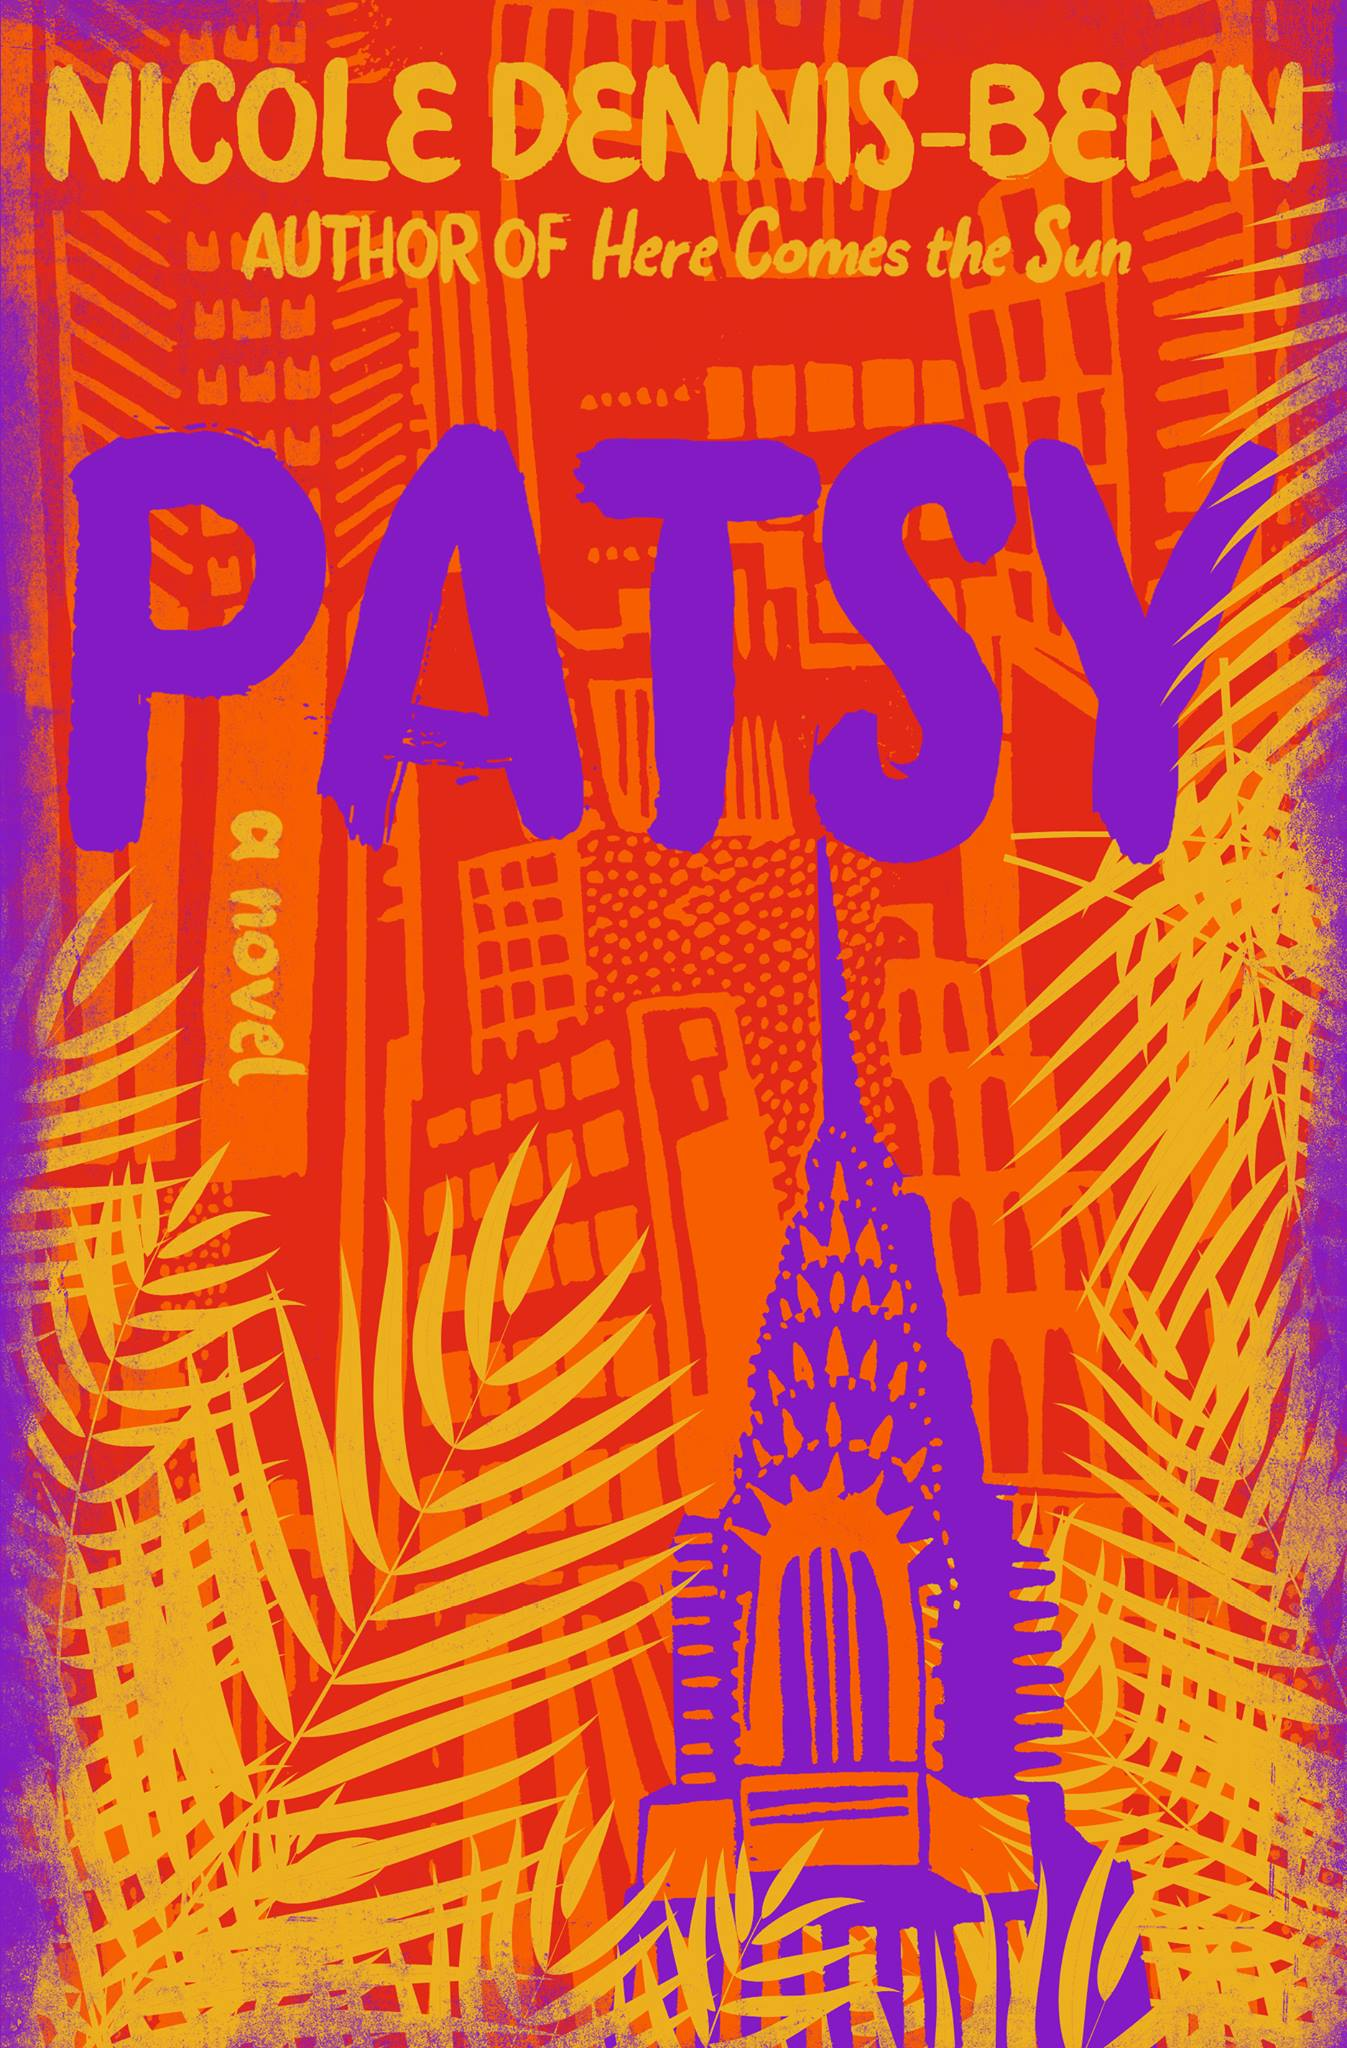 Patsy  by Nicole Dennis-Benn  Liveright —- June 4, 2019